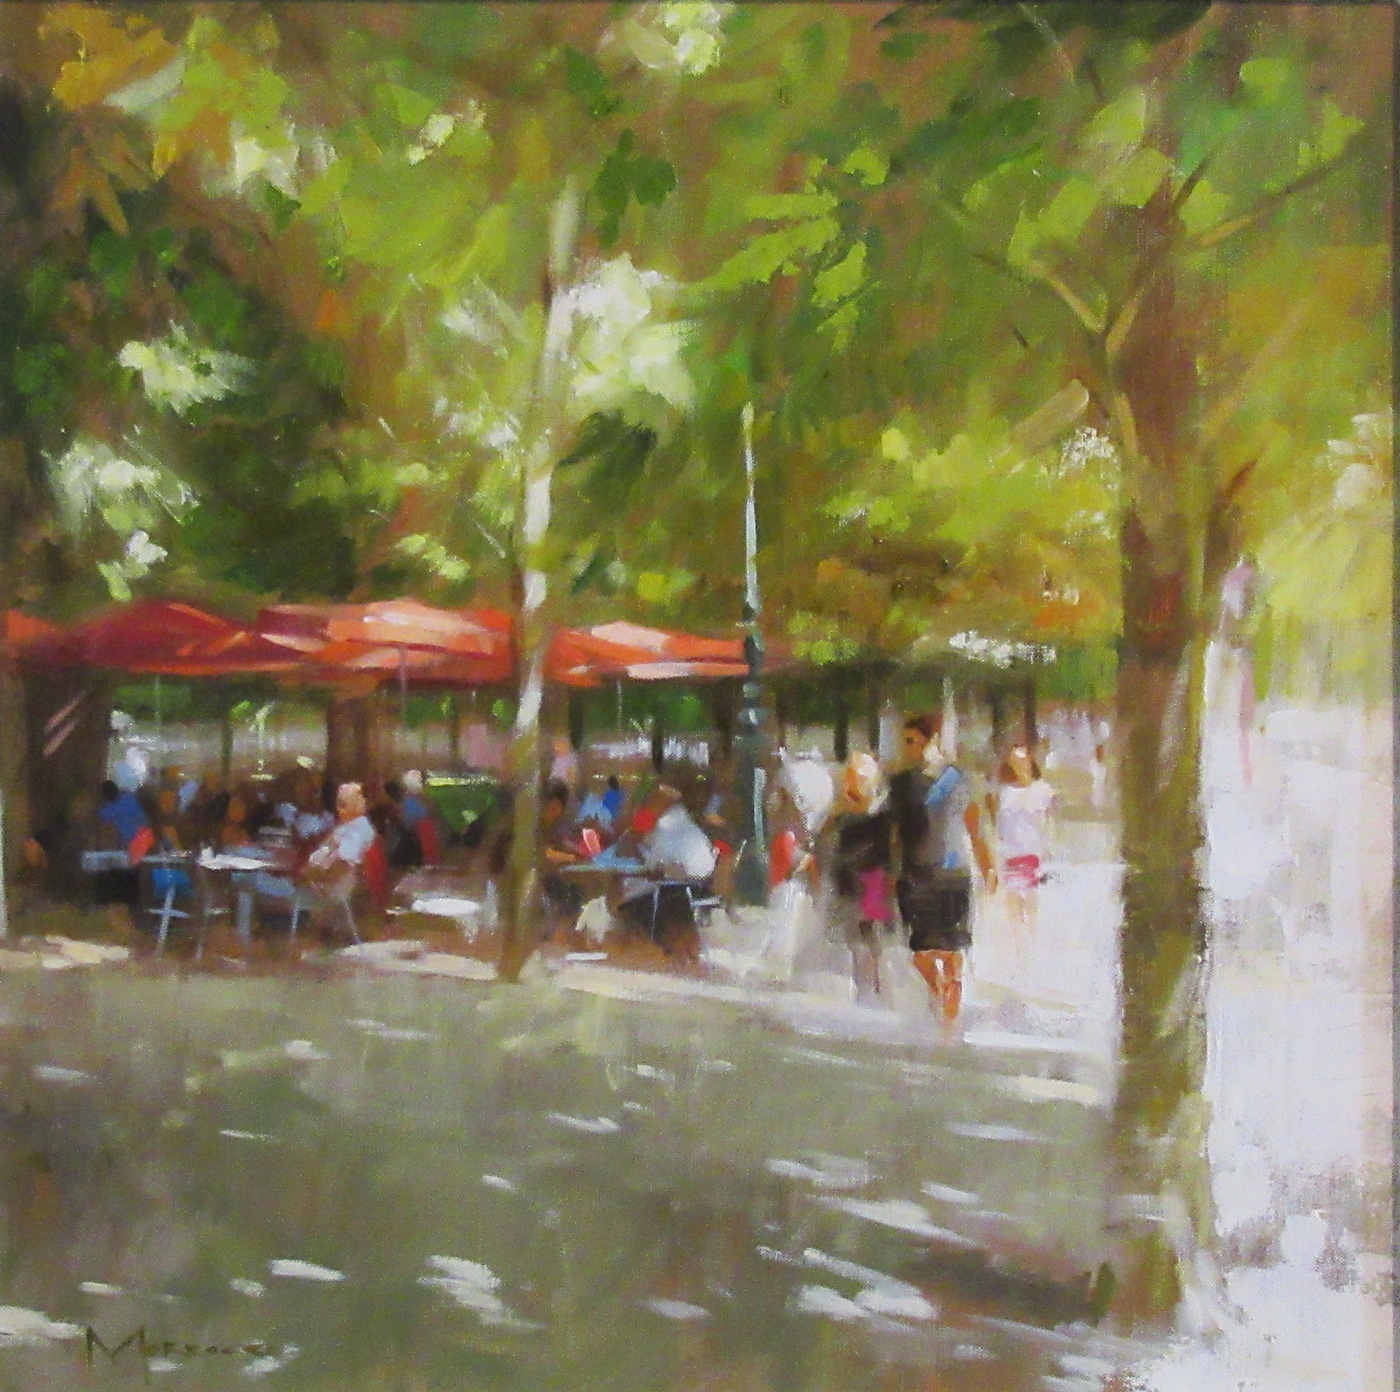 Late Afternoon, Jardin de Tuileries, Paris by  Jack Morrocco